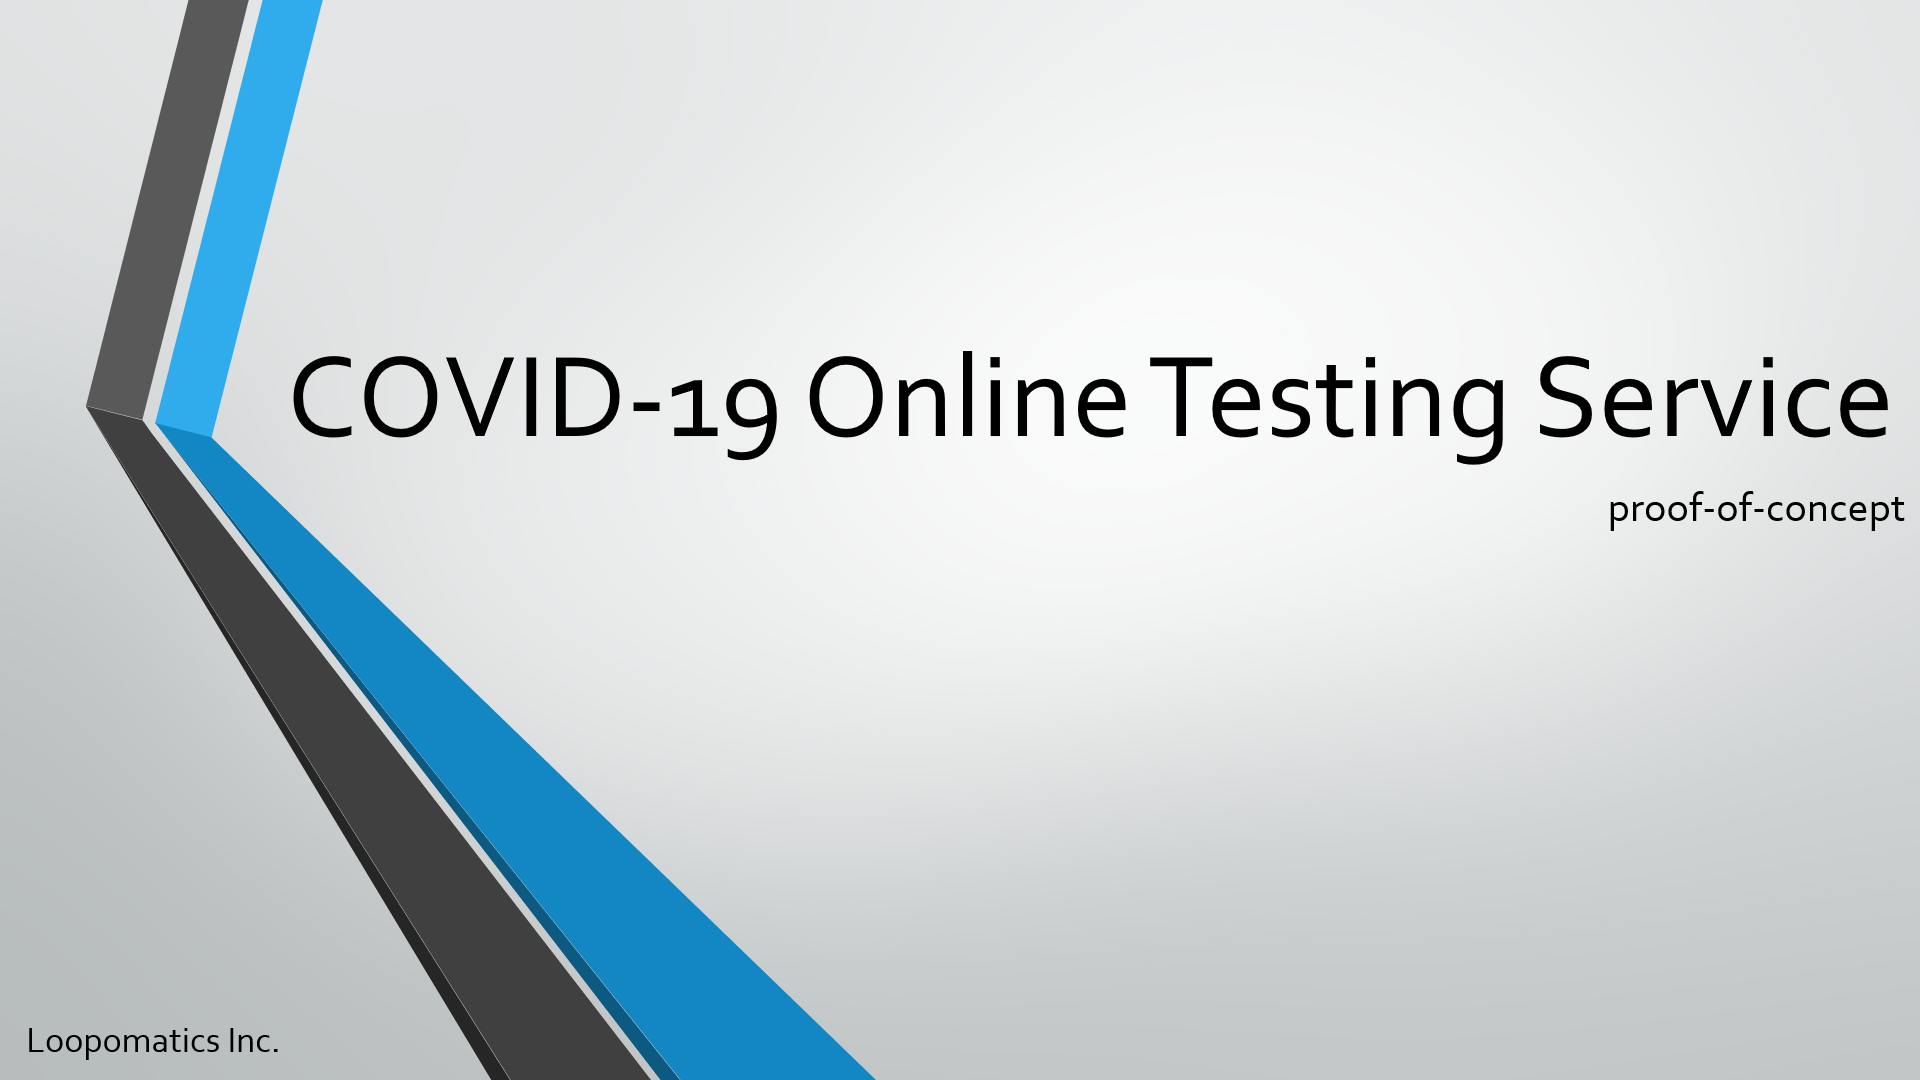 COVID-19 Online Testing Service